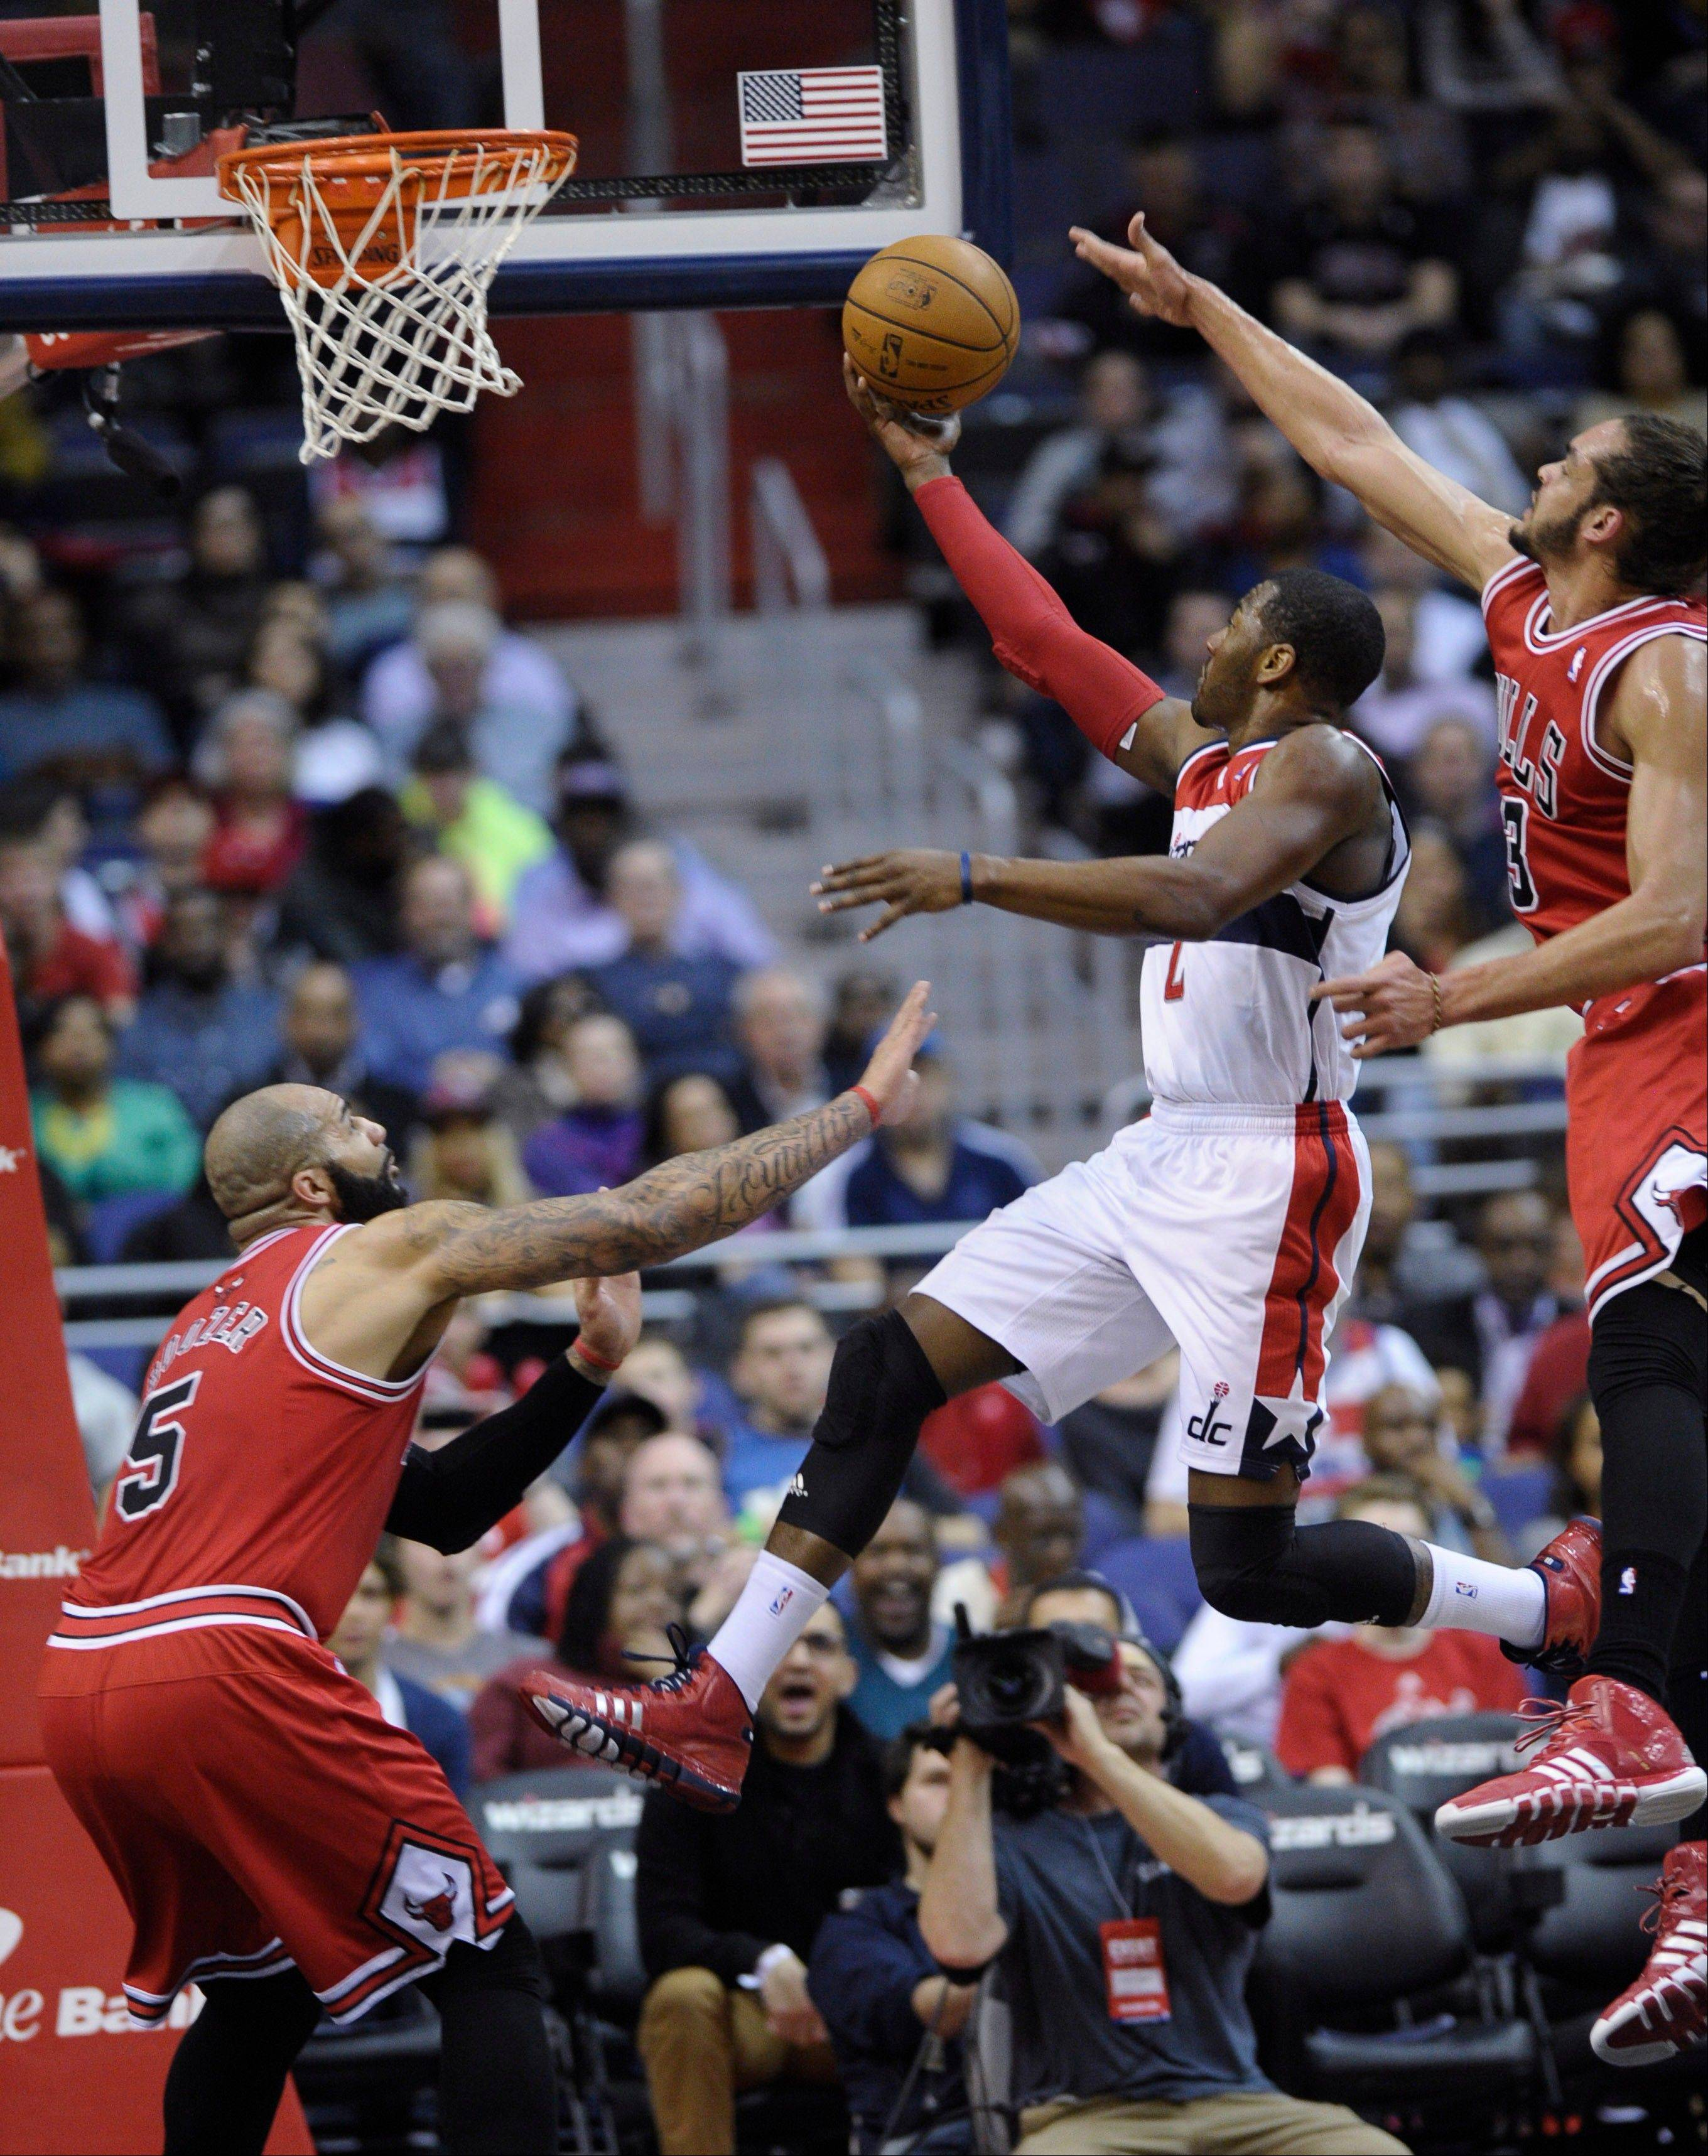 Washington Wizards guard John Wall, center, goes up for a shot under pressure from Chicago Bulls forward Carlos Boozer (5) and center Joakim Noah, right, during the first quarter of an NBA basketball game Friday in Washington. The Bulls lost 96-93.